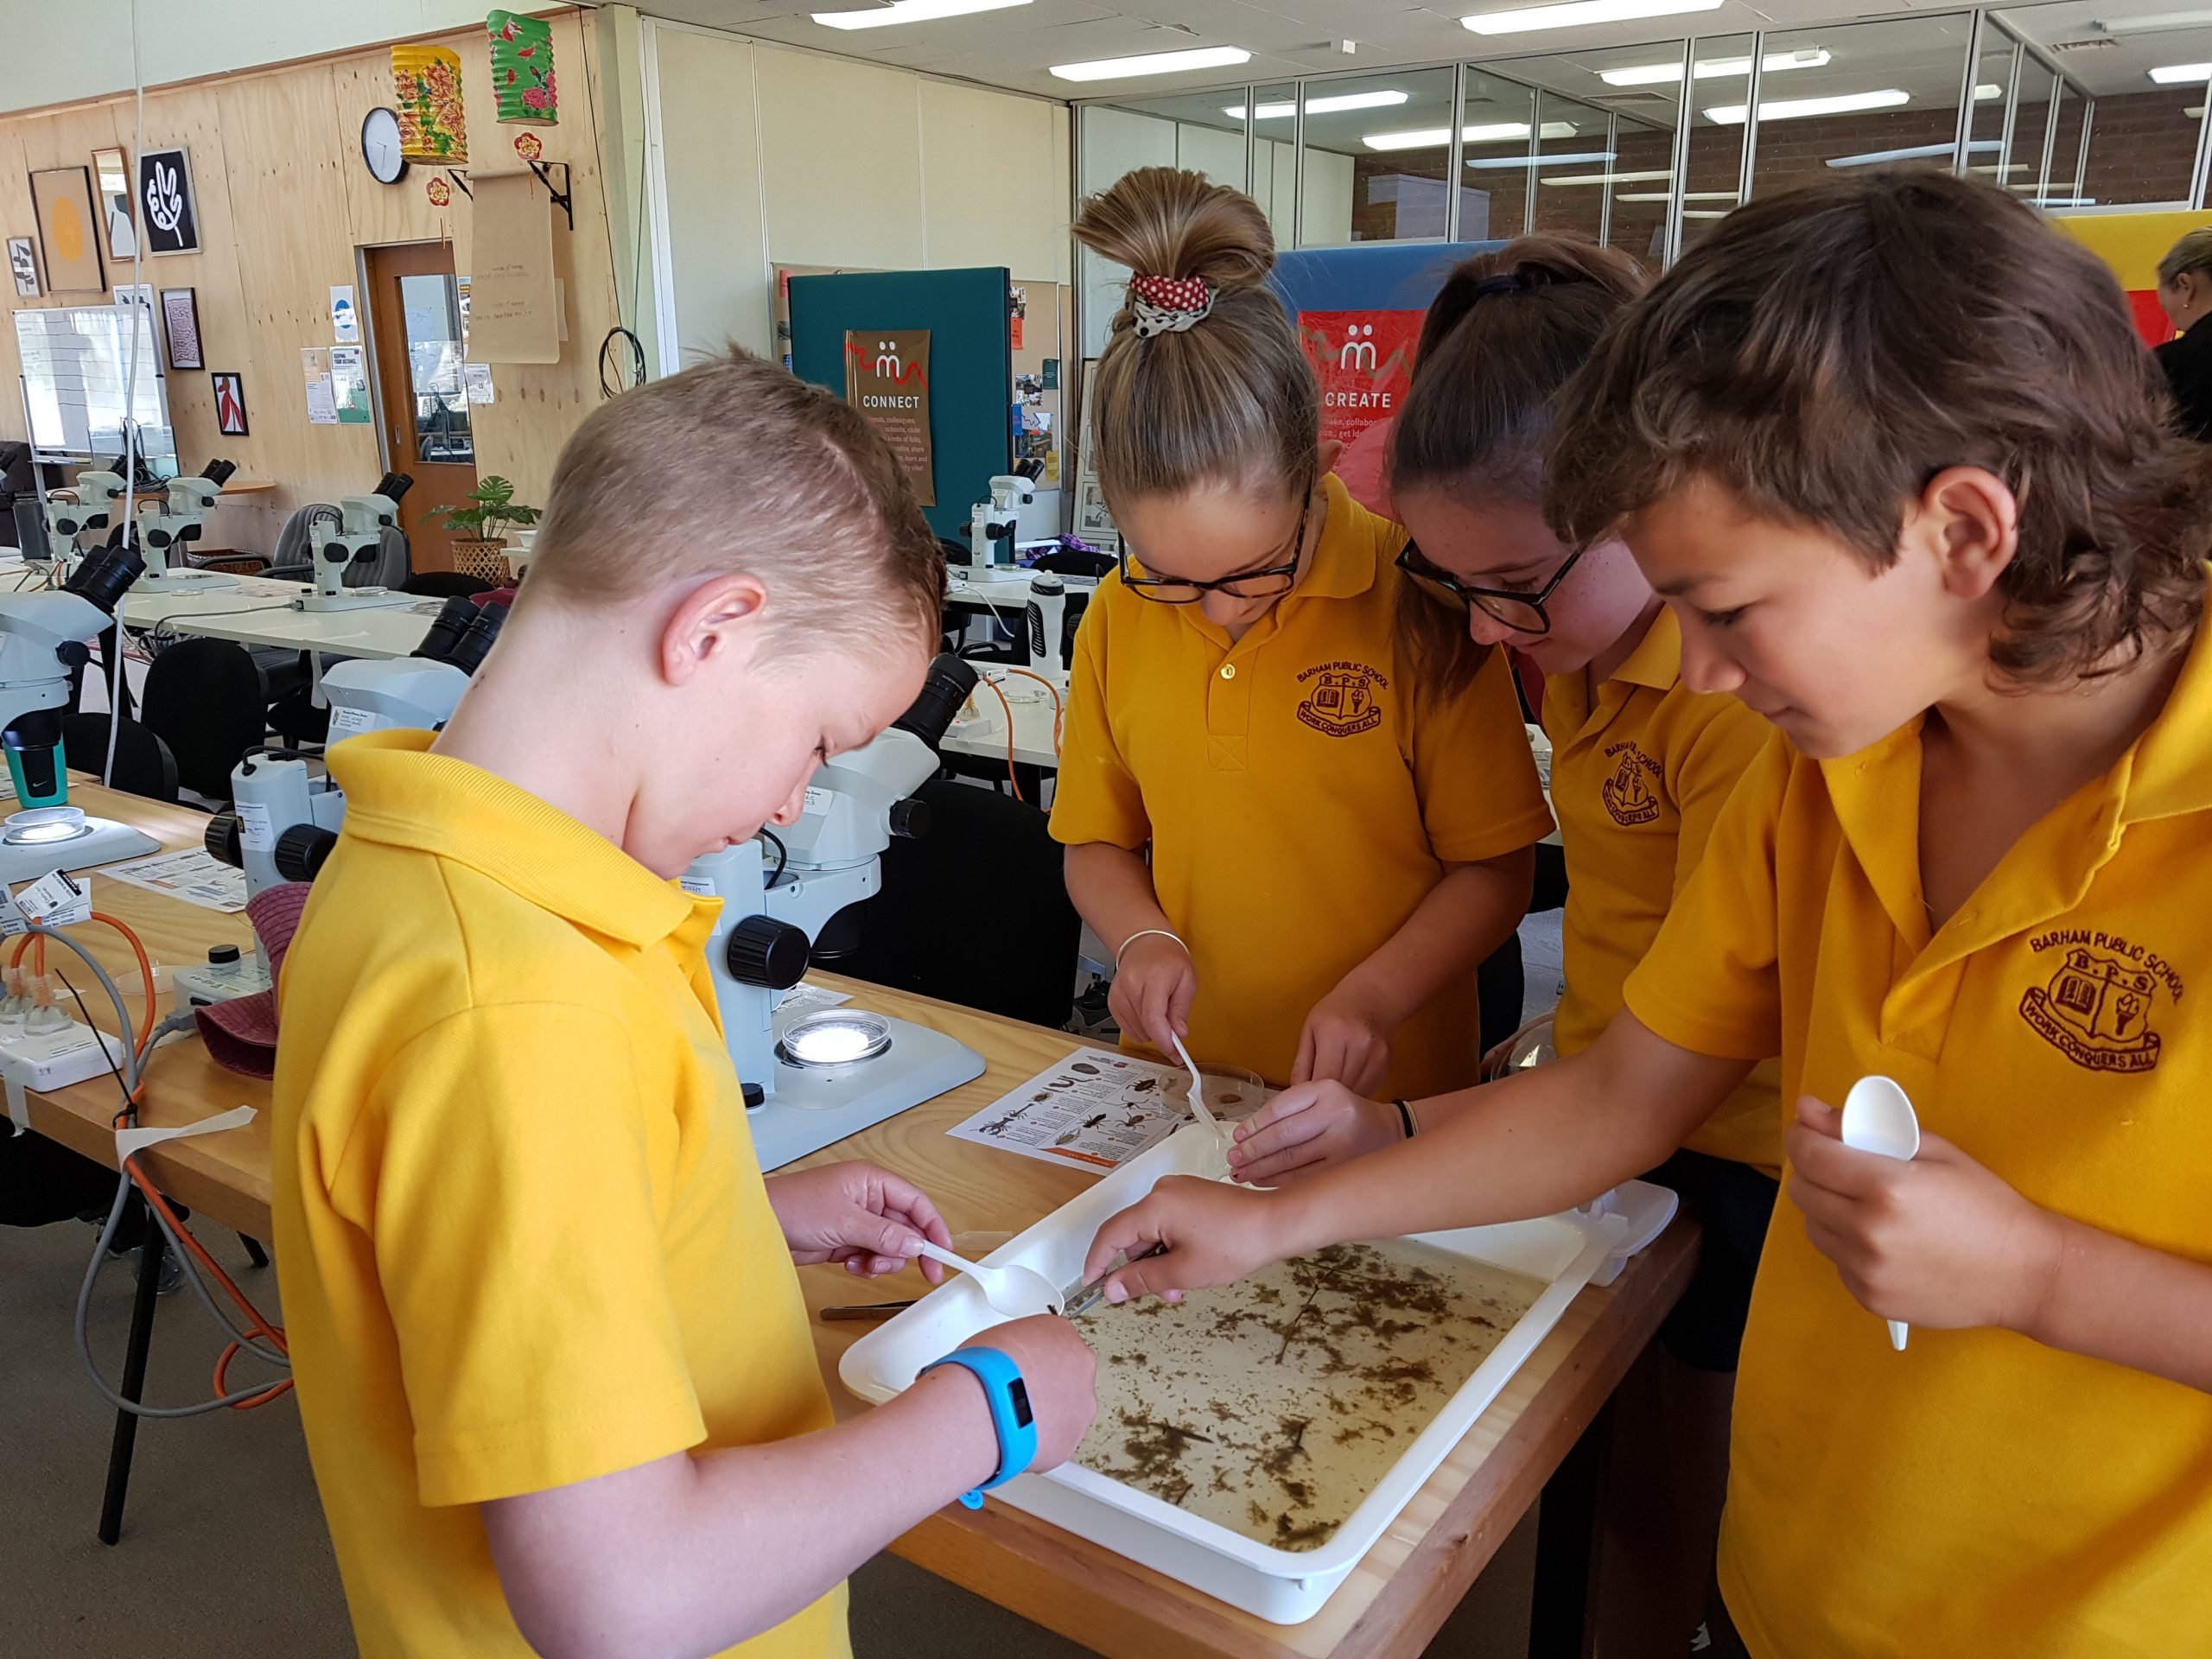 Students from Barham Public School learning about aquatic bugs